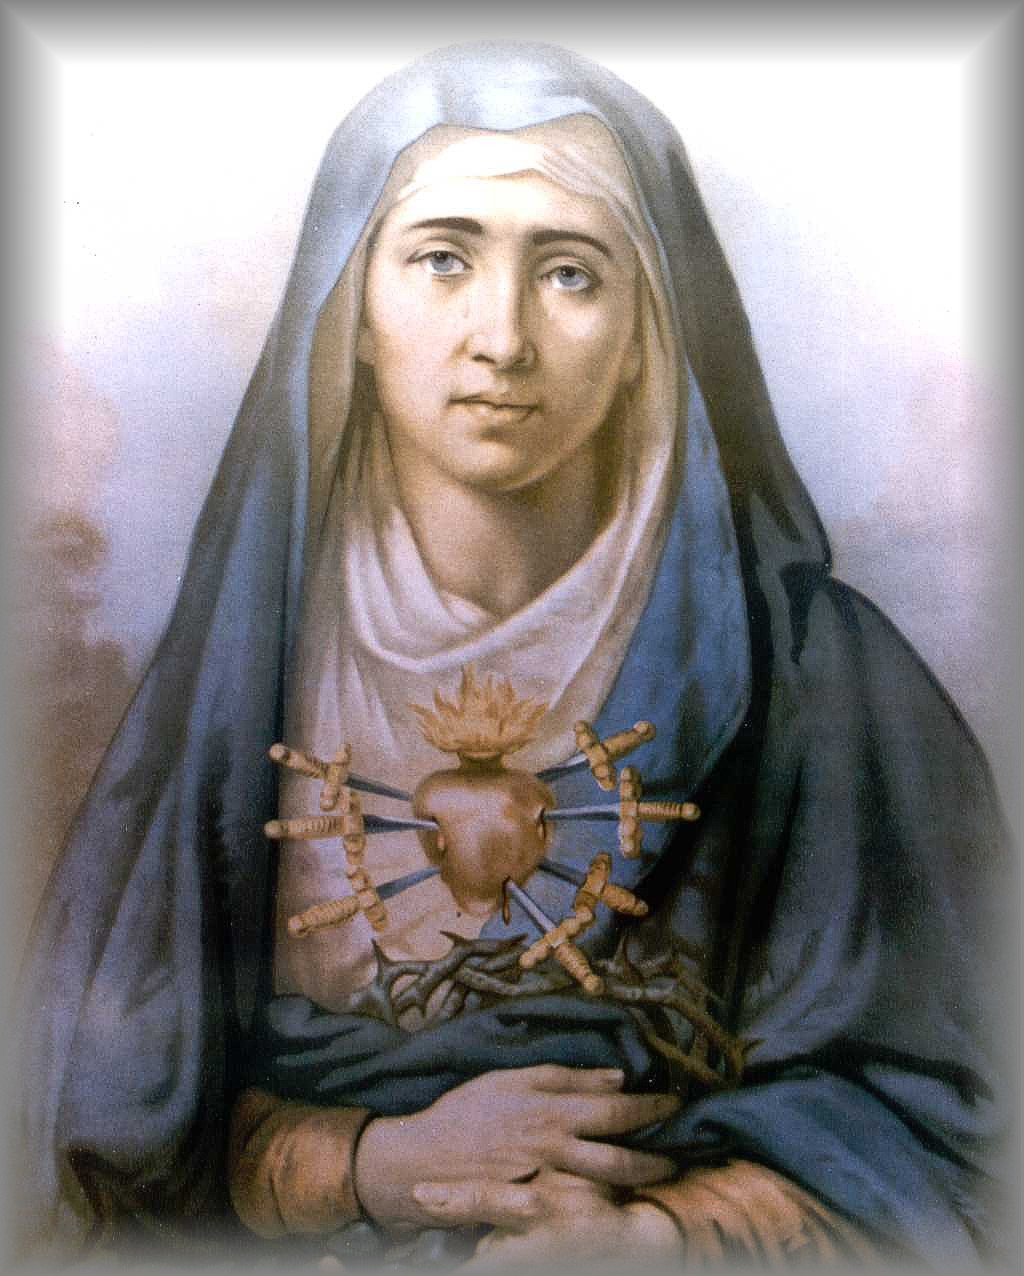 OUR LADY of the SEVEN SORROWS (artist unknown)